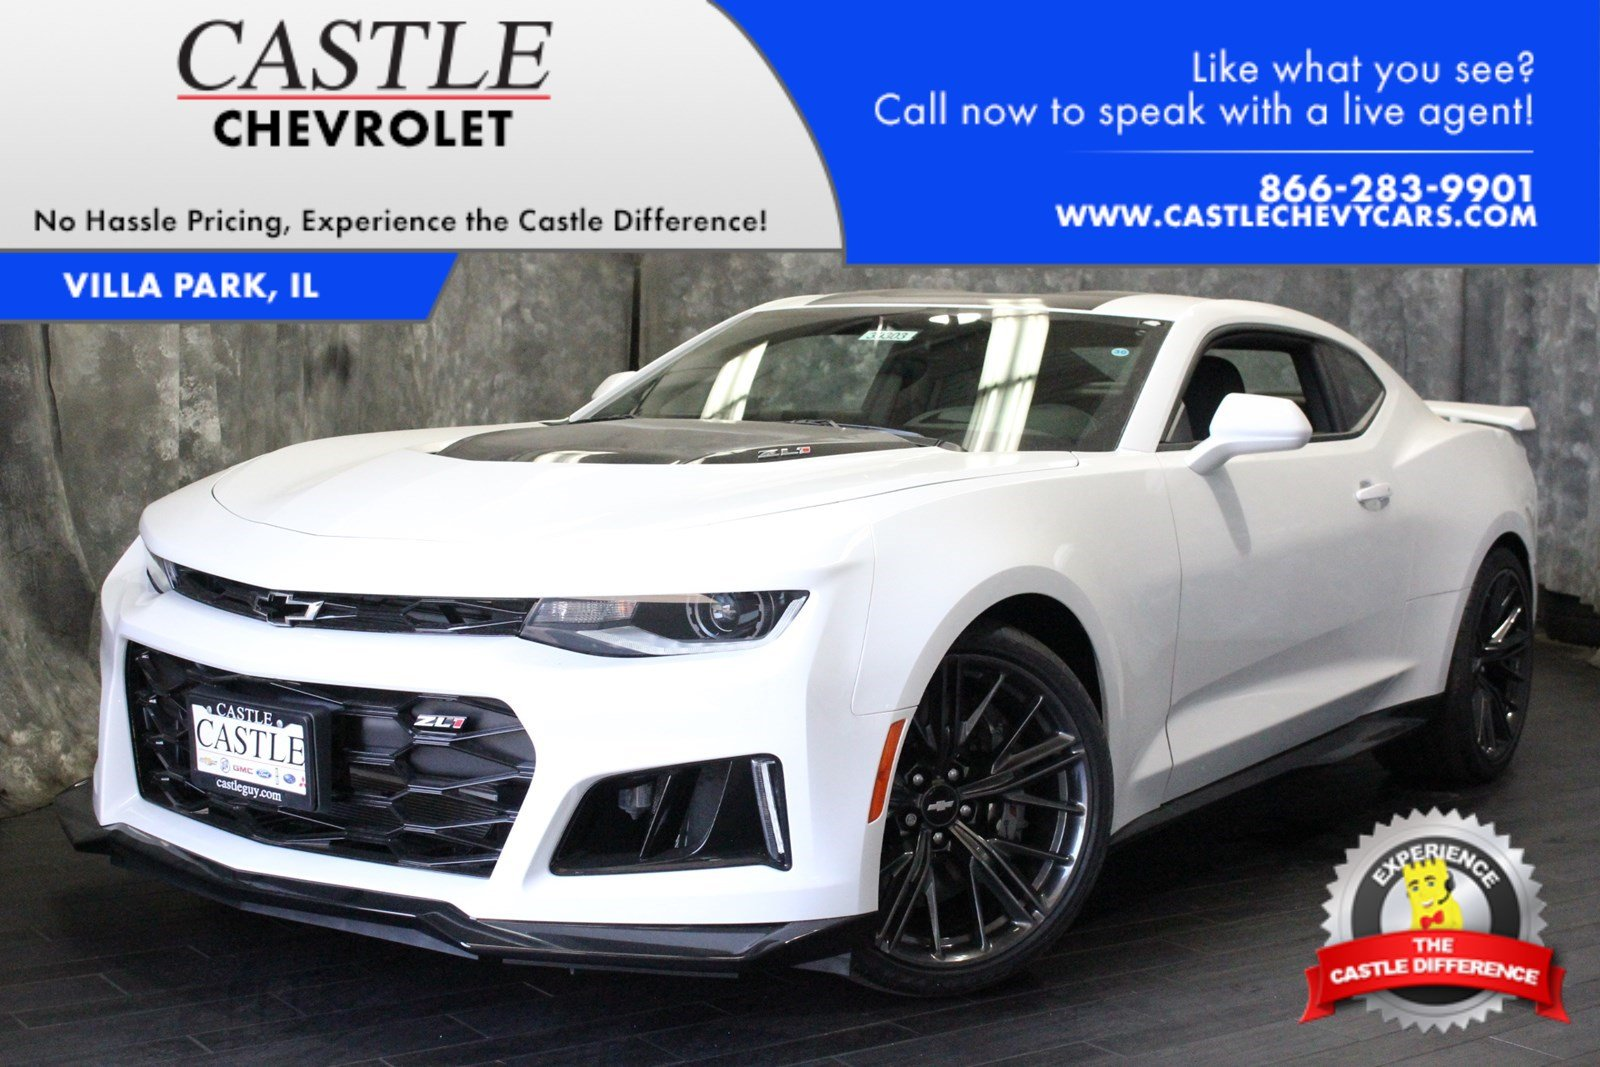 New 2018 Chevrolet Camaro Zl1 2dr Car In Villa Park 39303 Castle 1954 Chevy Rear Window For Blinds